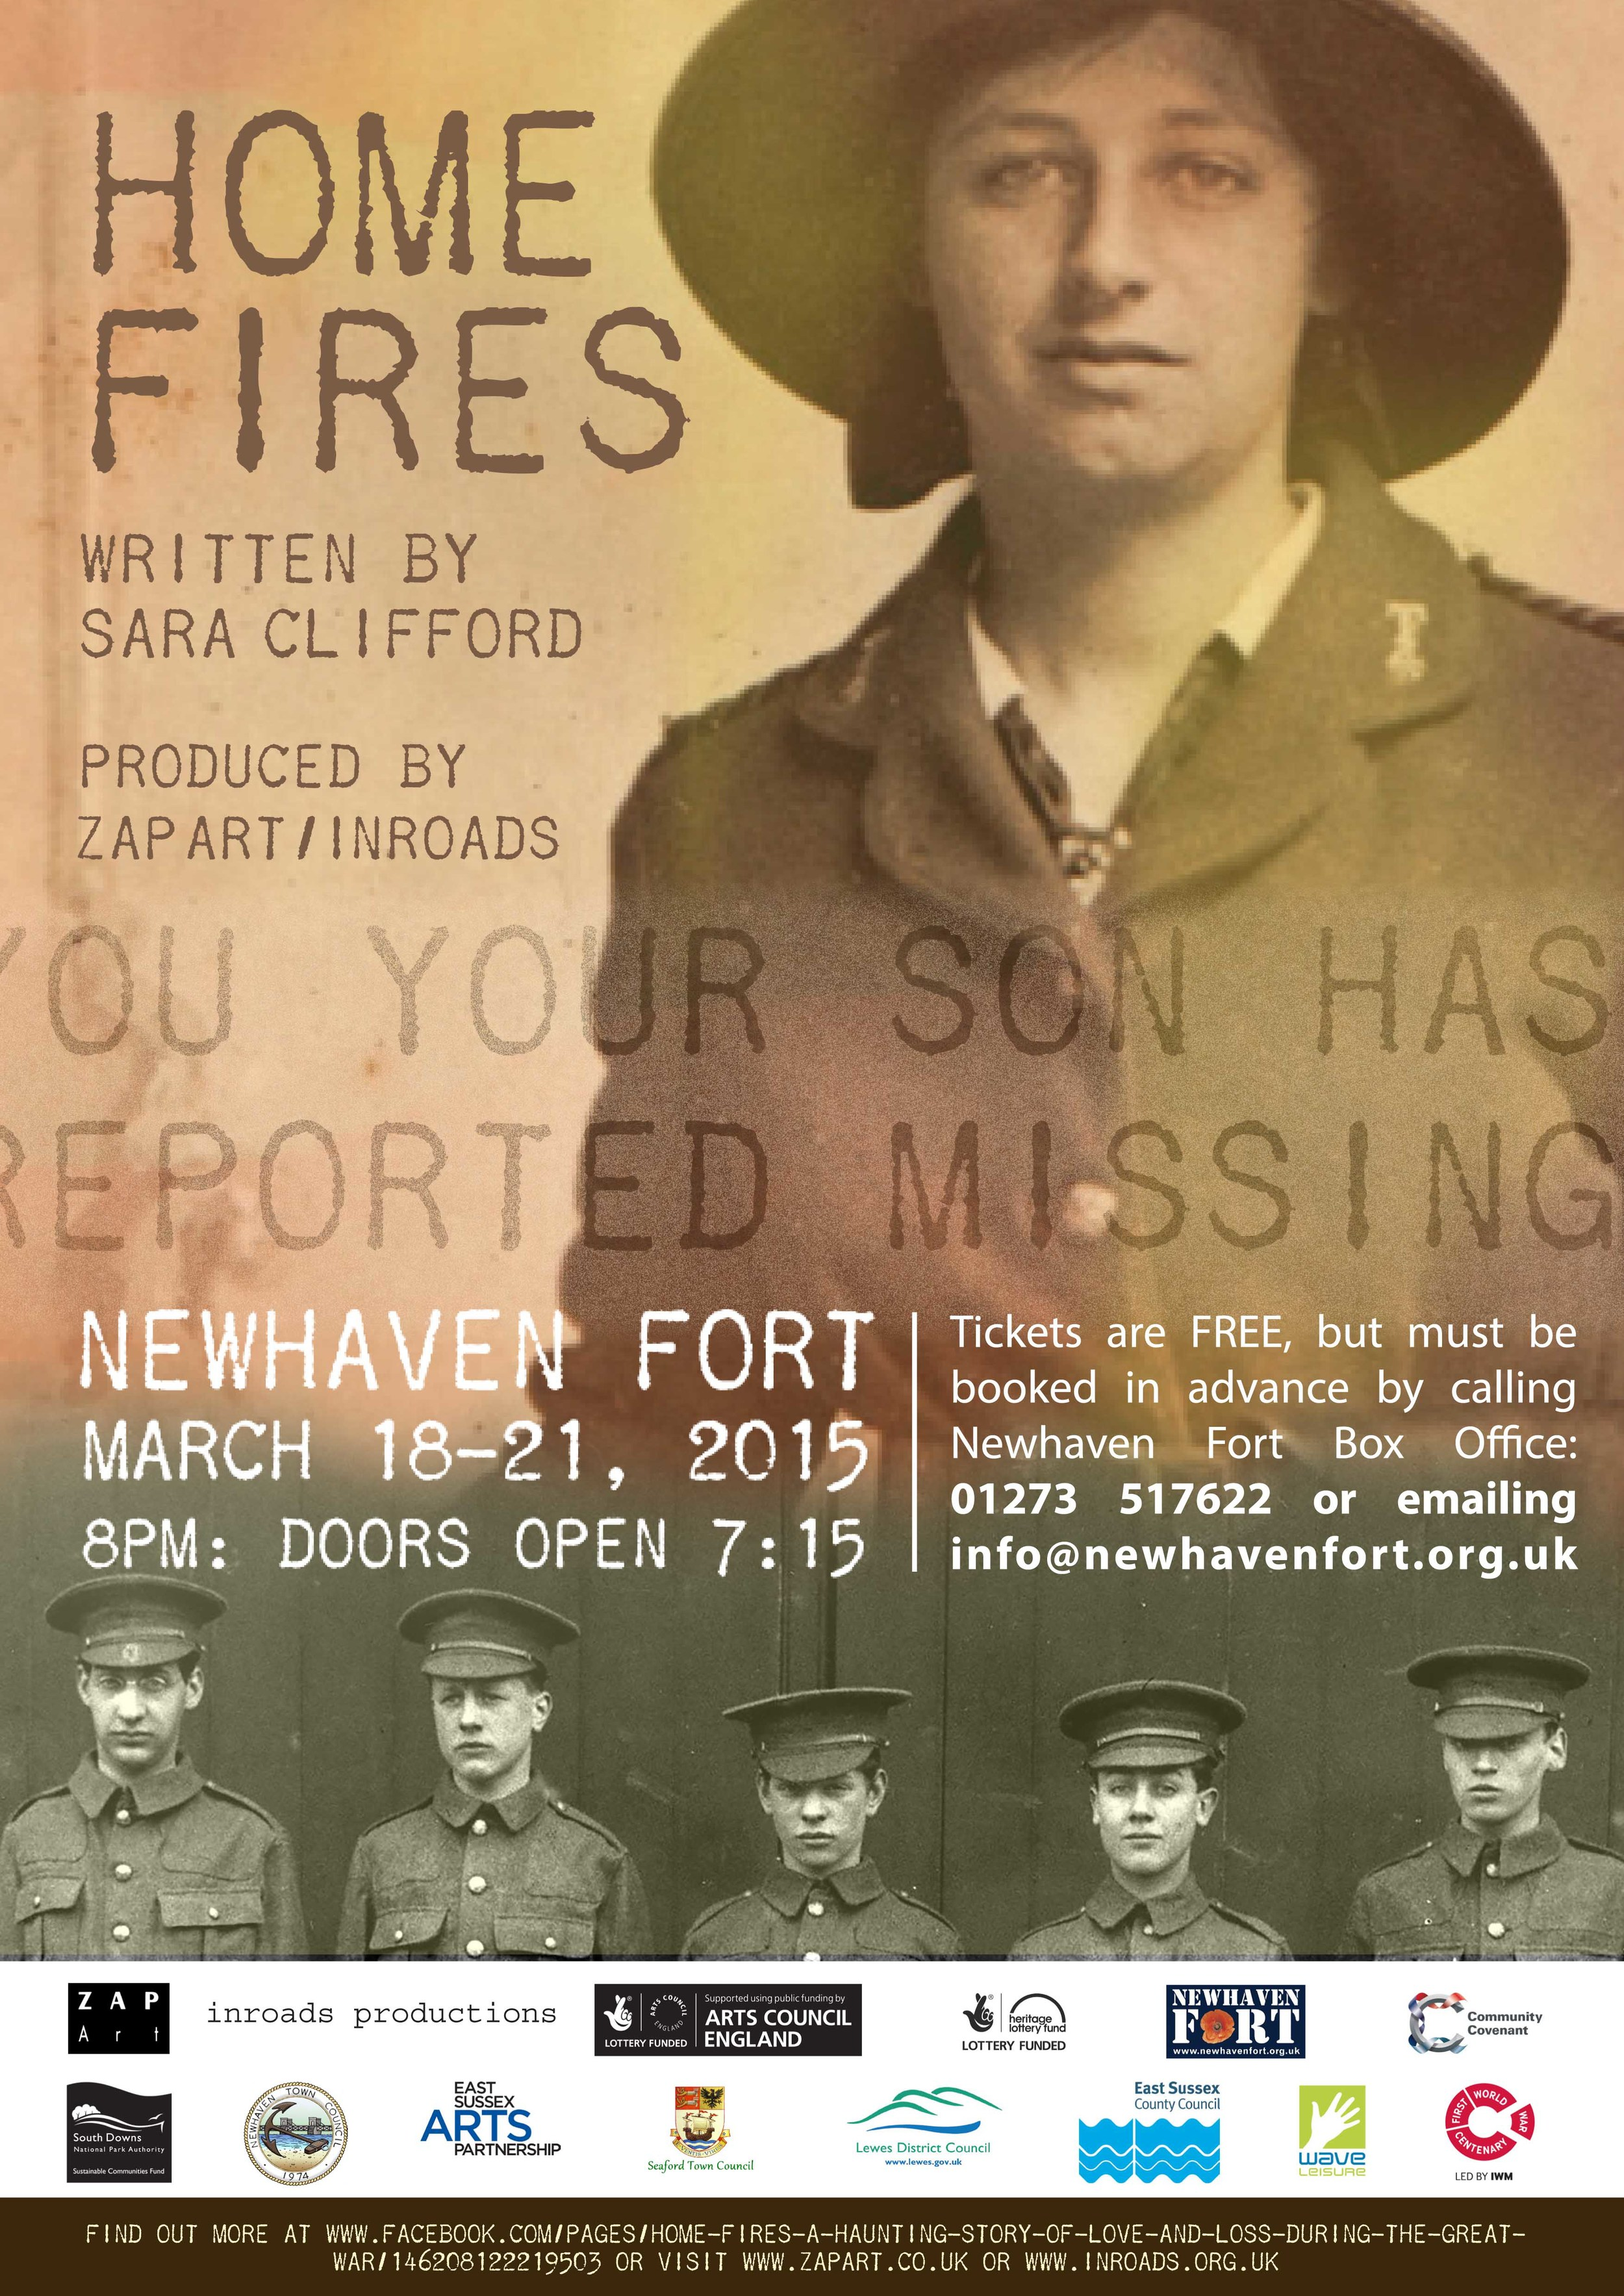 Stunning leaflet of the Play Home Fires by 100Designs